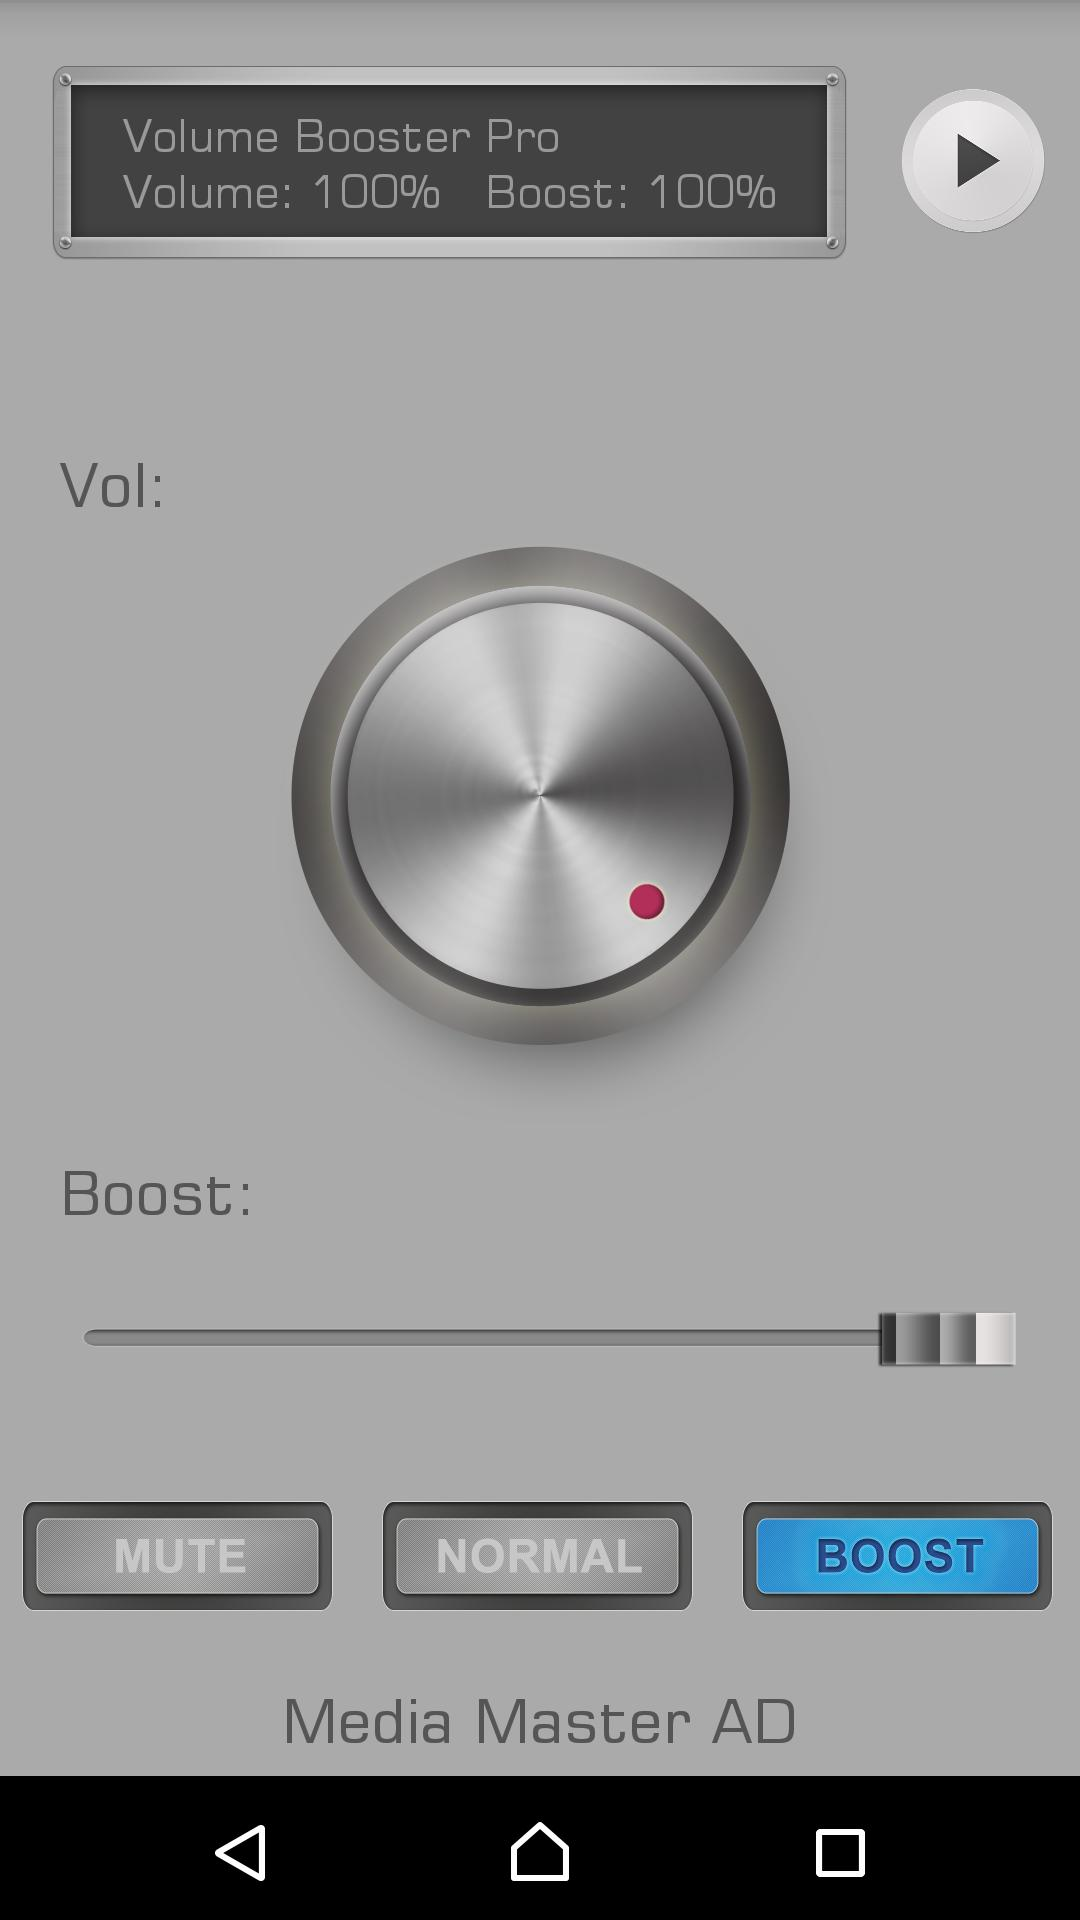 Volume Booster Pro for Android - APK Download